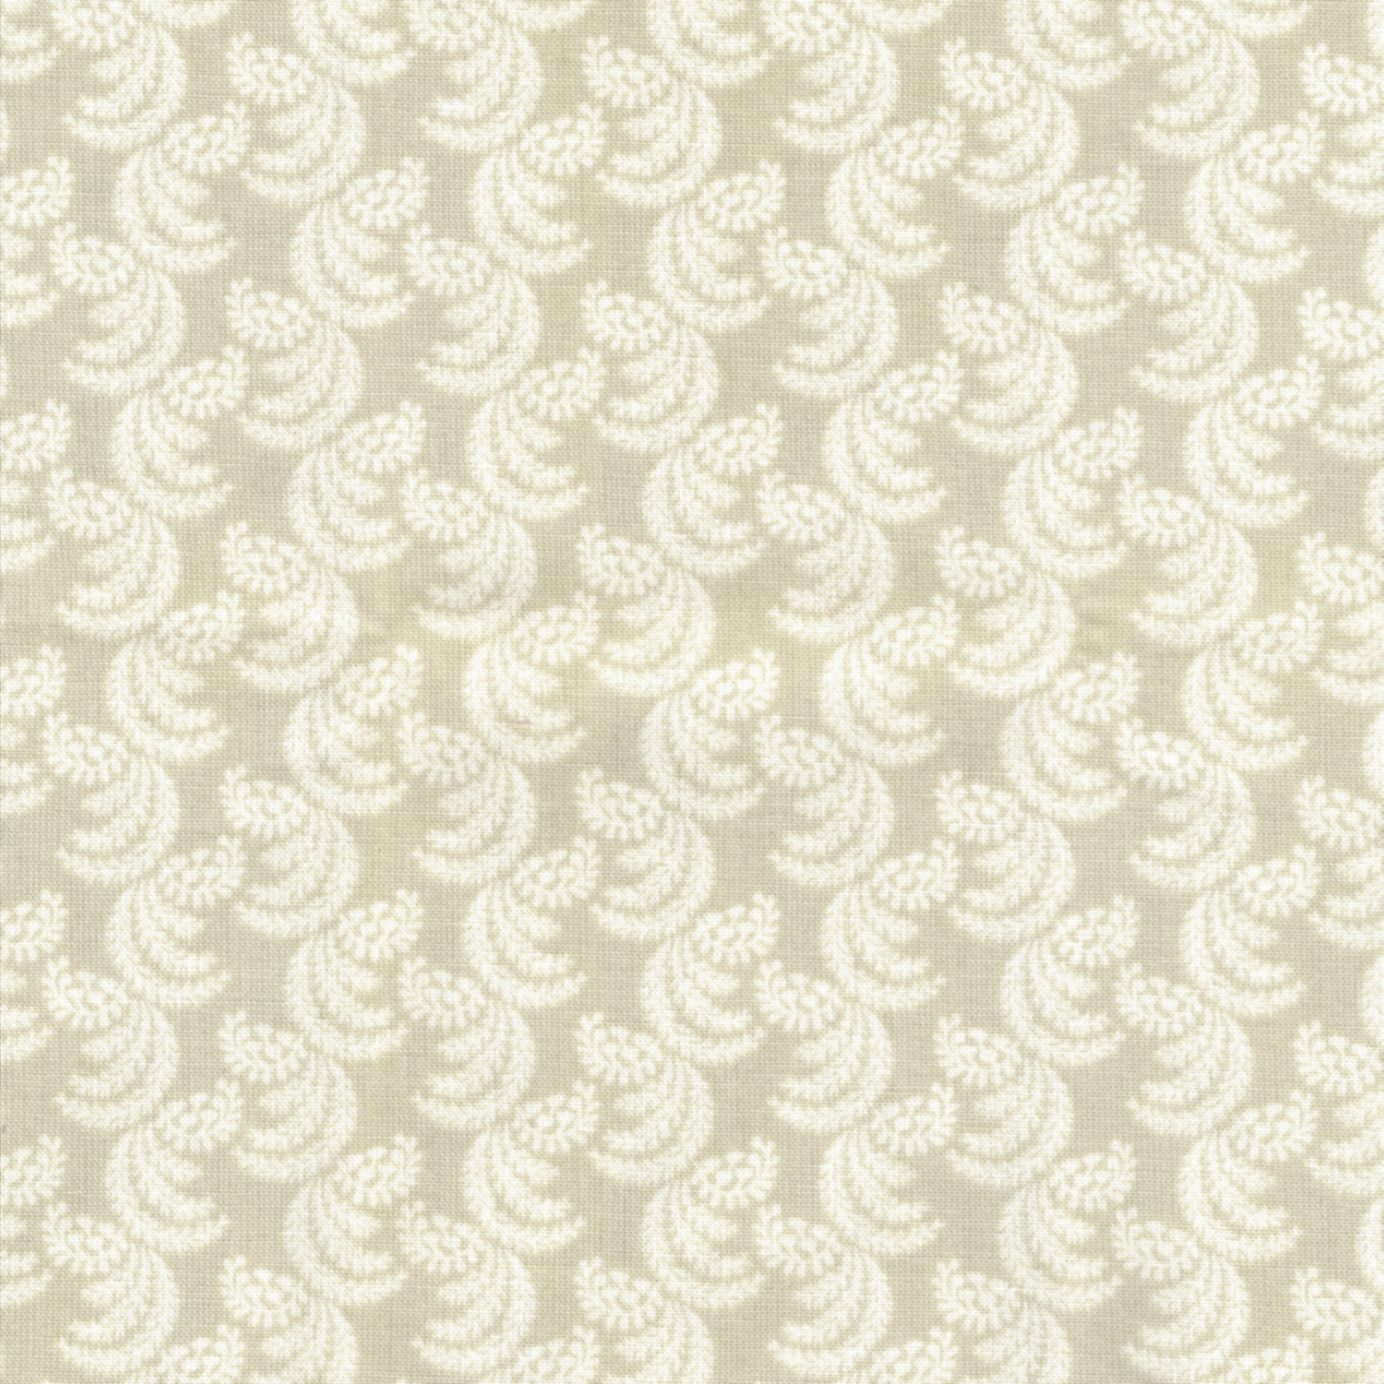 jefferson-city-feathers-cream-c6162-cream